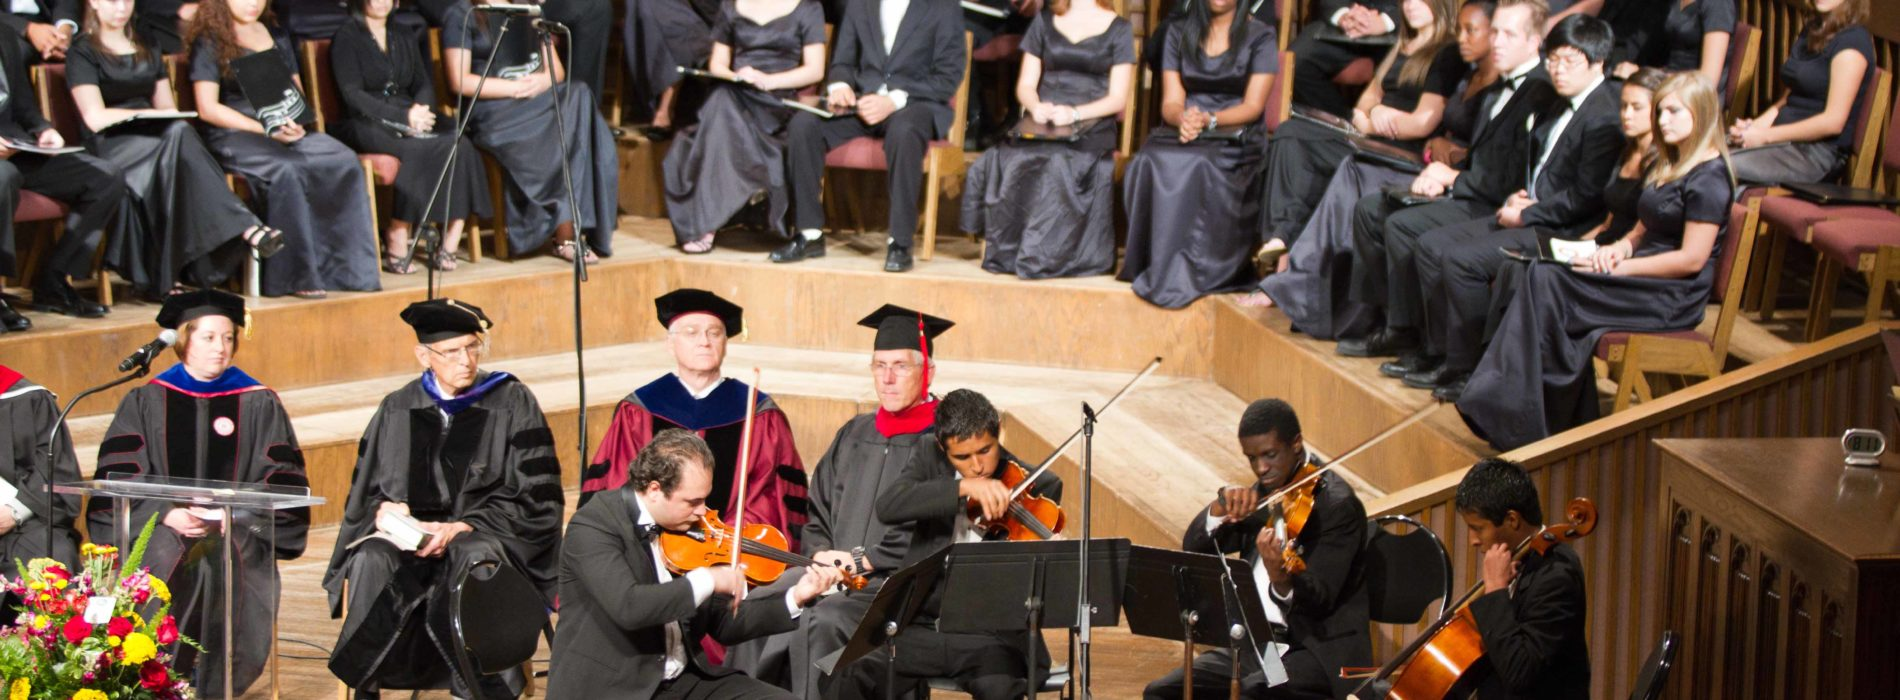 Dybdahl Speaks for Annual Convocation